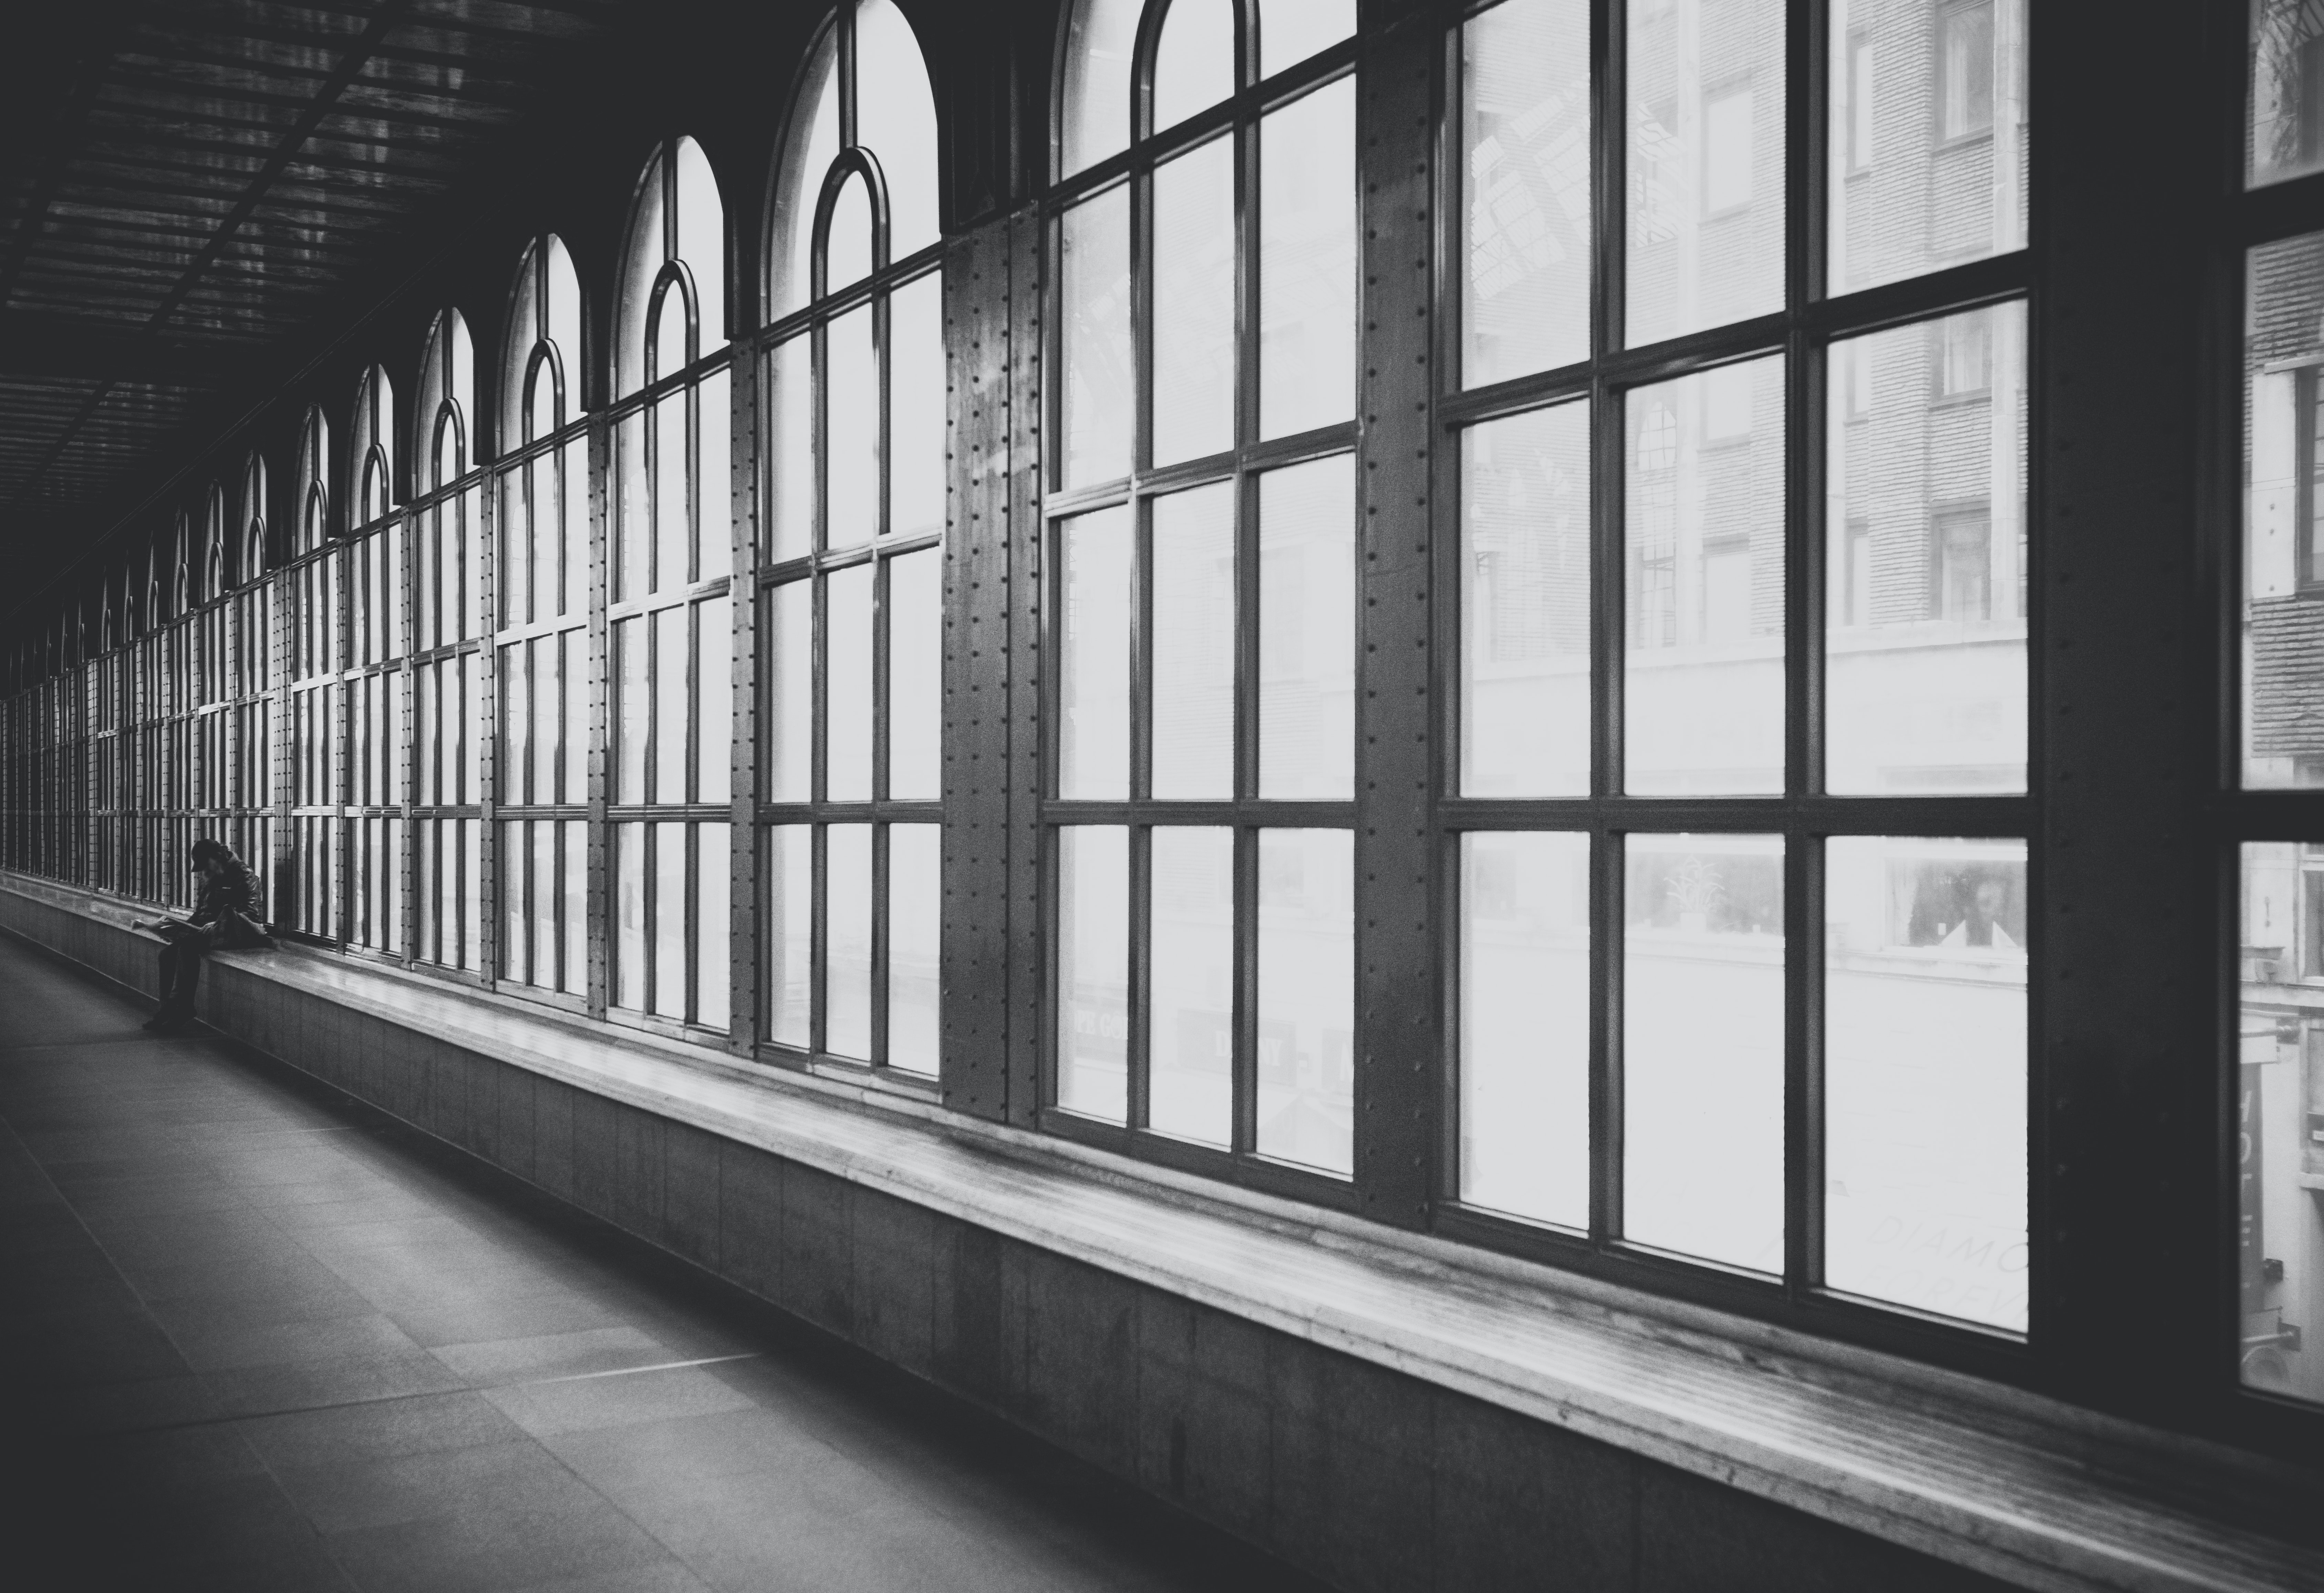 Black and white shot of hallway interior with large windows with person sitting